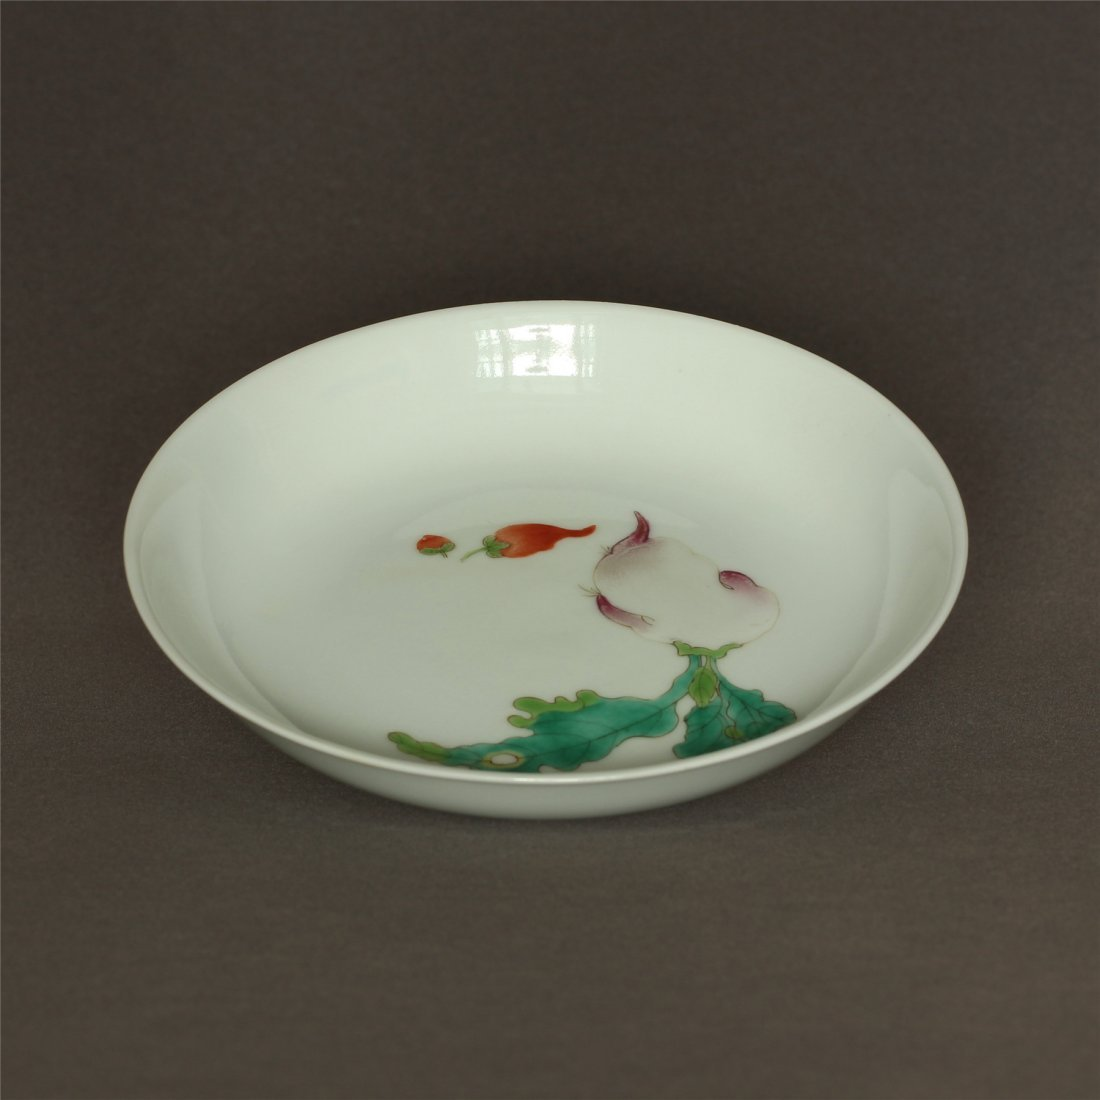 Famille rose porcelain plate of Qing Dynasty XuanTong - 7